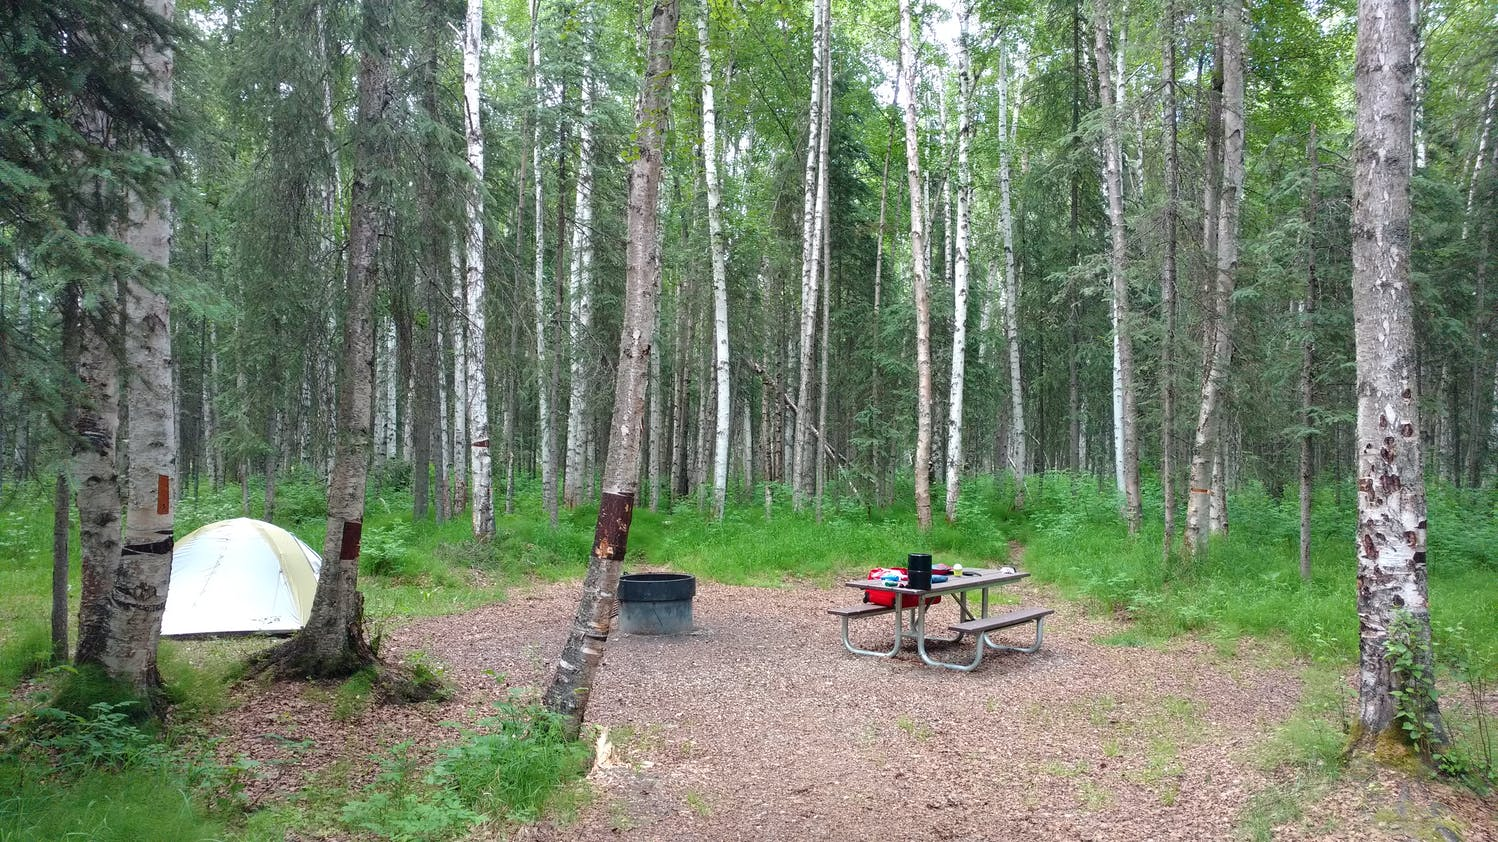 Campsite within a forest of Aspens and a picnic table in Chena River SR.